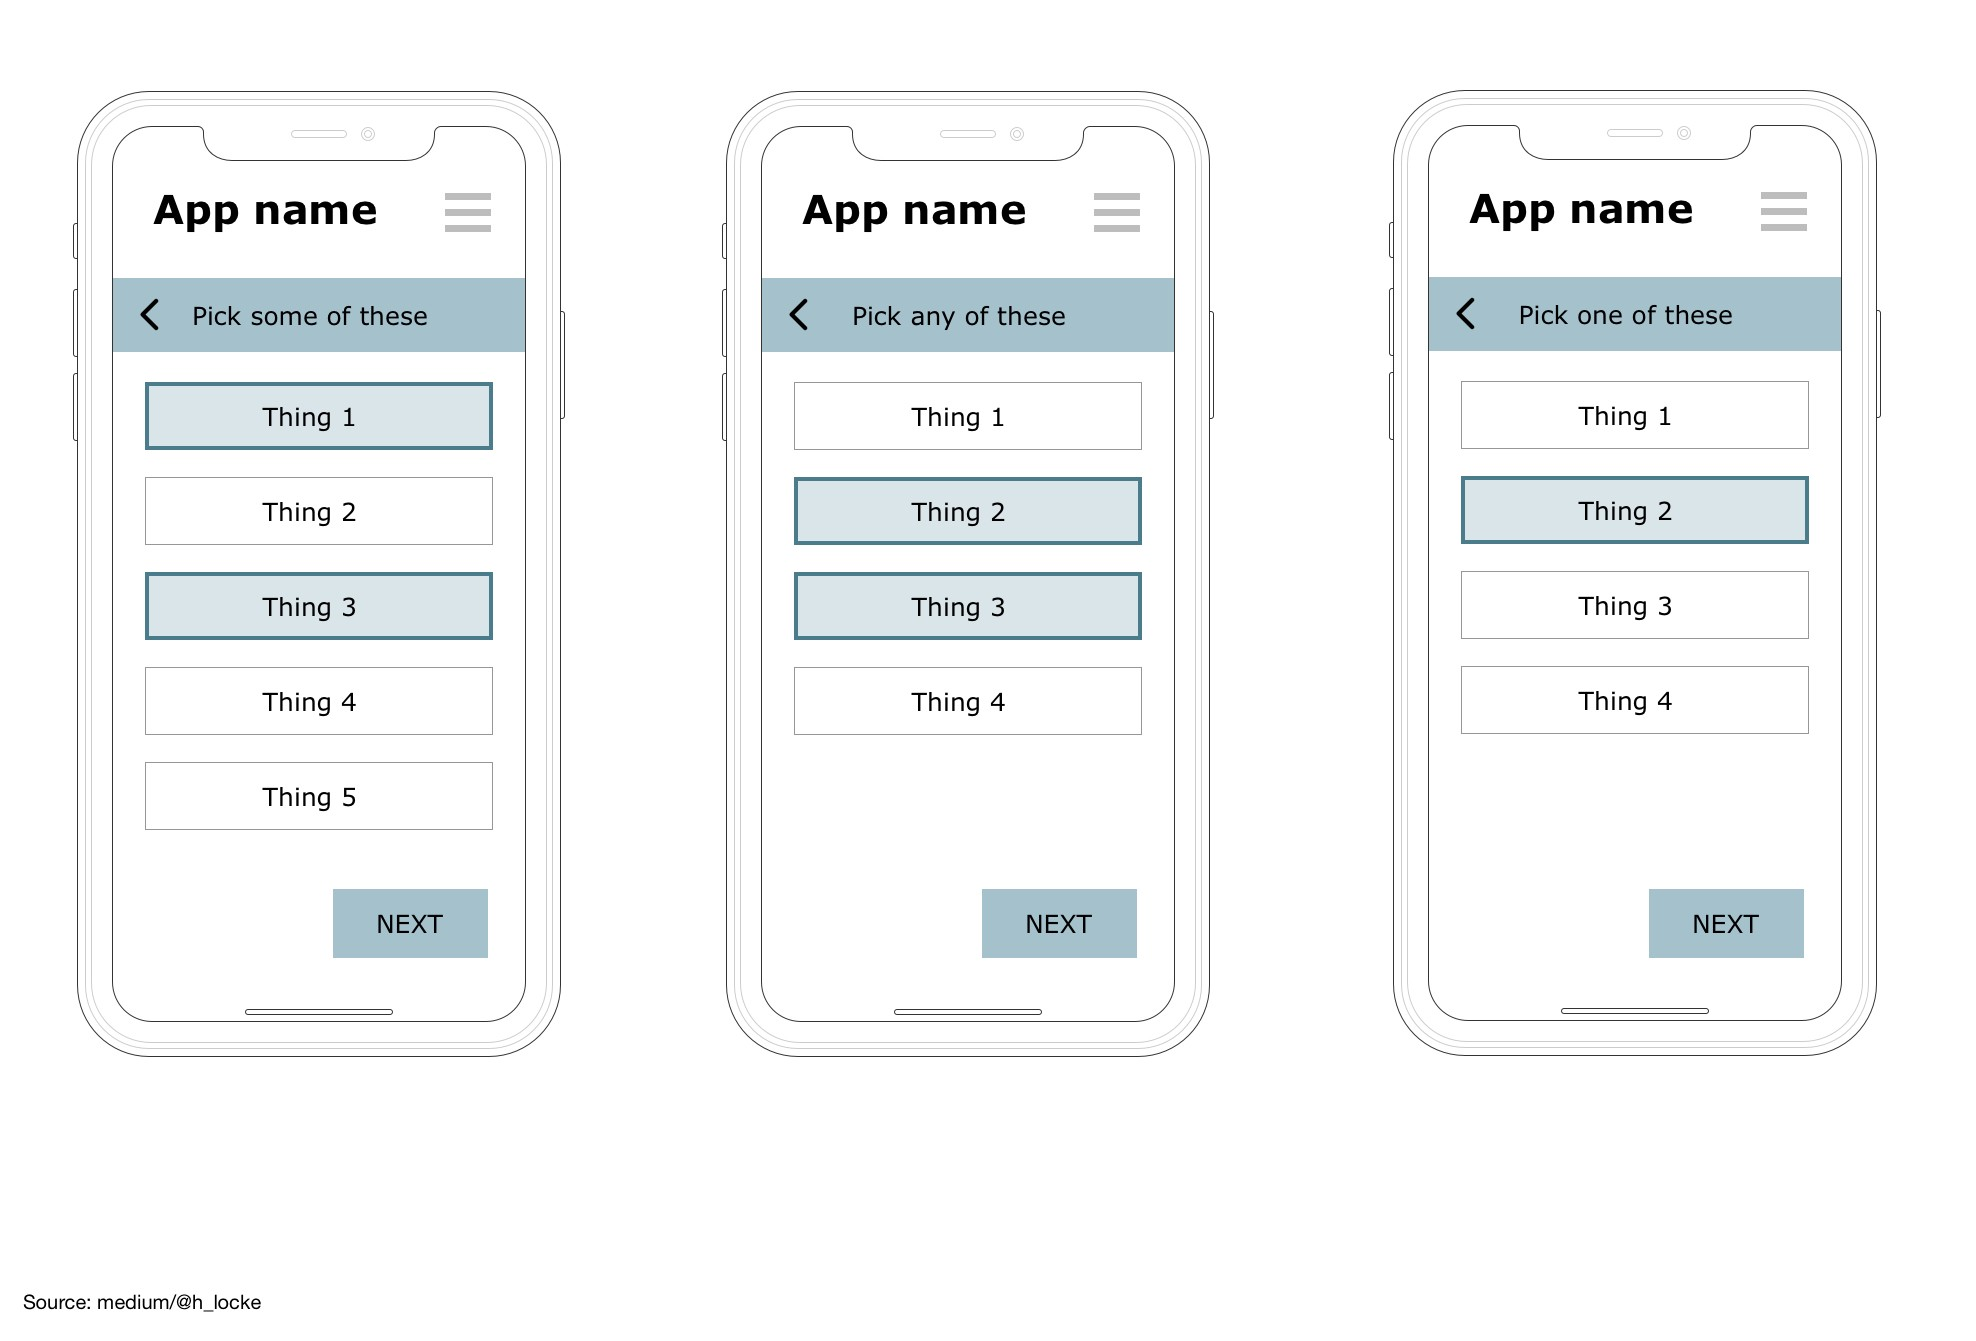 wireframe where all options are identically highlighted, without use of radio buttons or tick boxes or other selector pattern